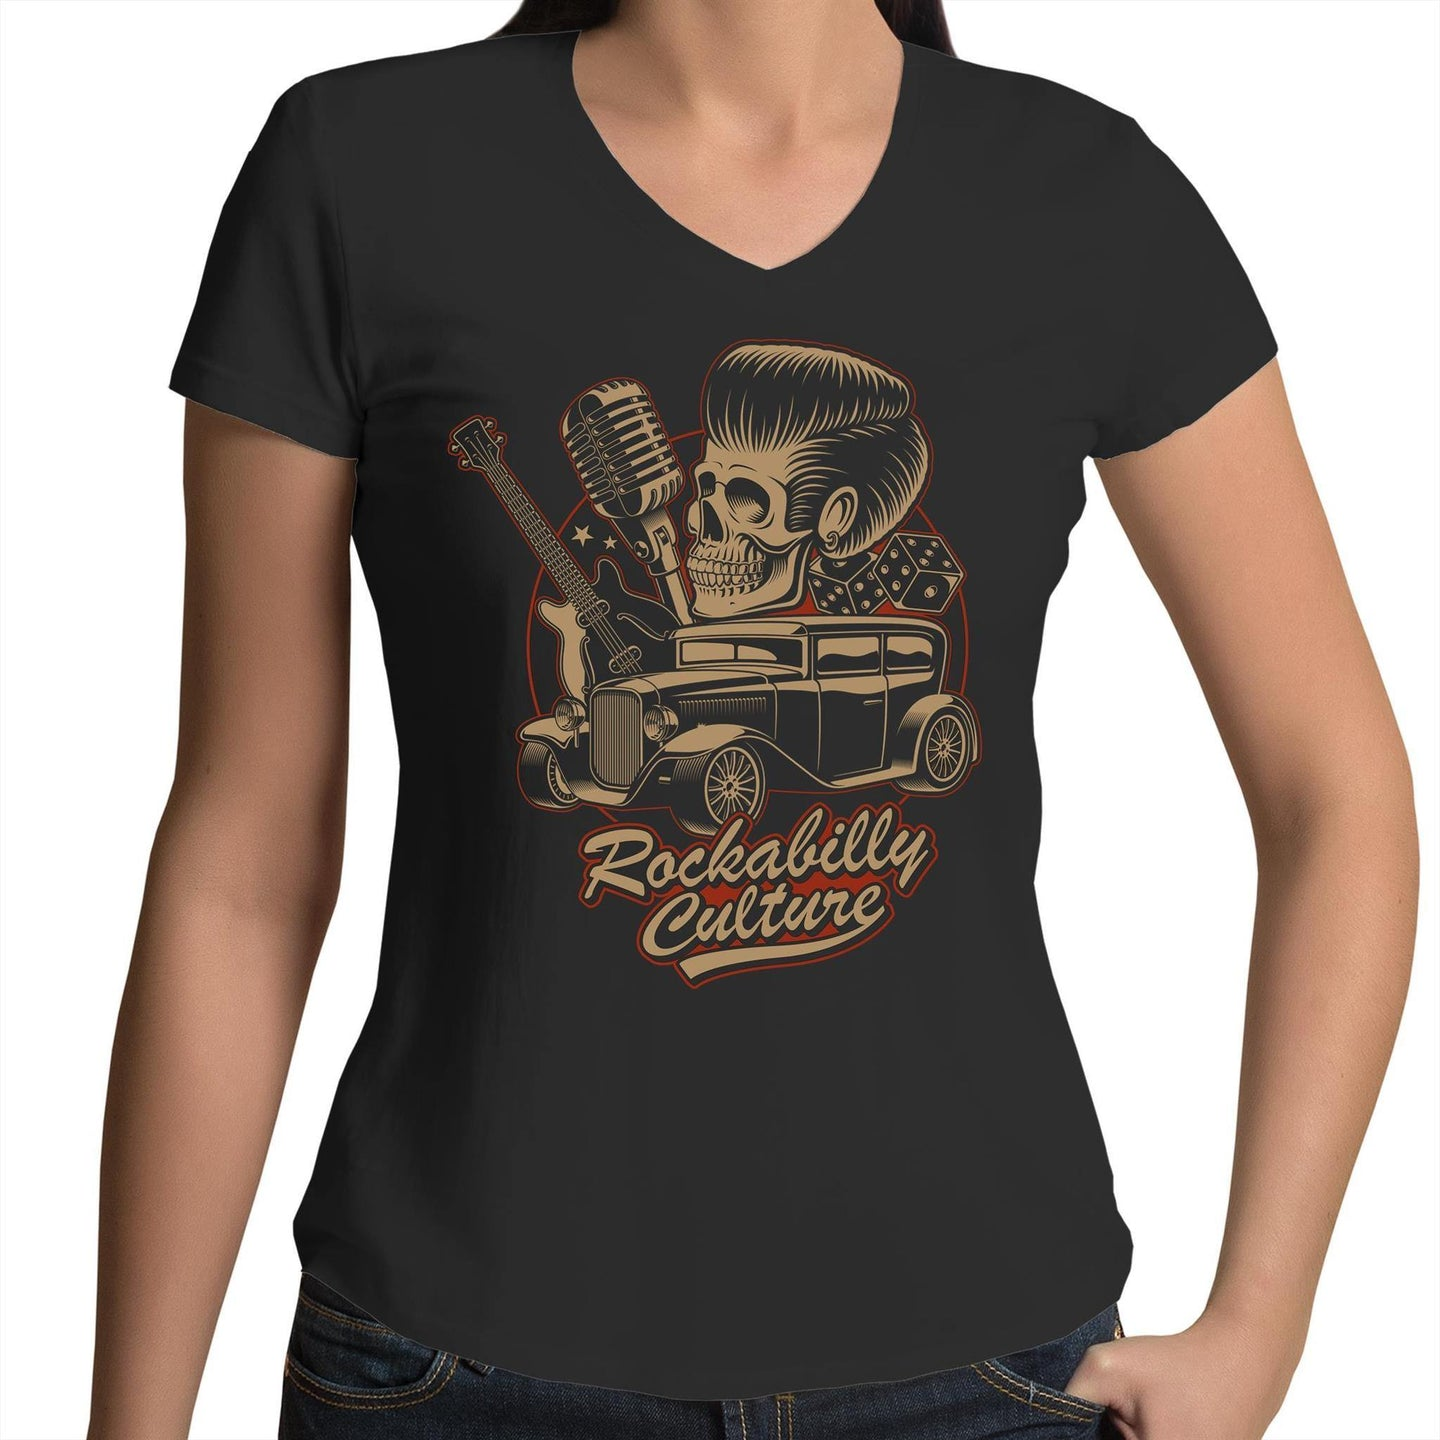 ROCKABILLY CULTURE - Womens V-Neck T-Shirt 8-16